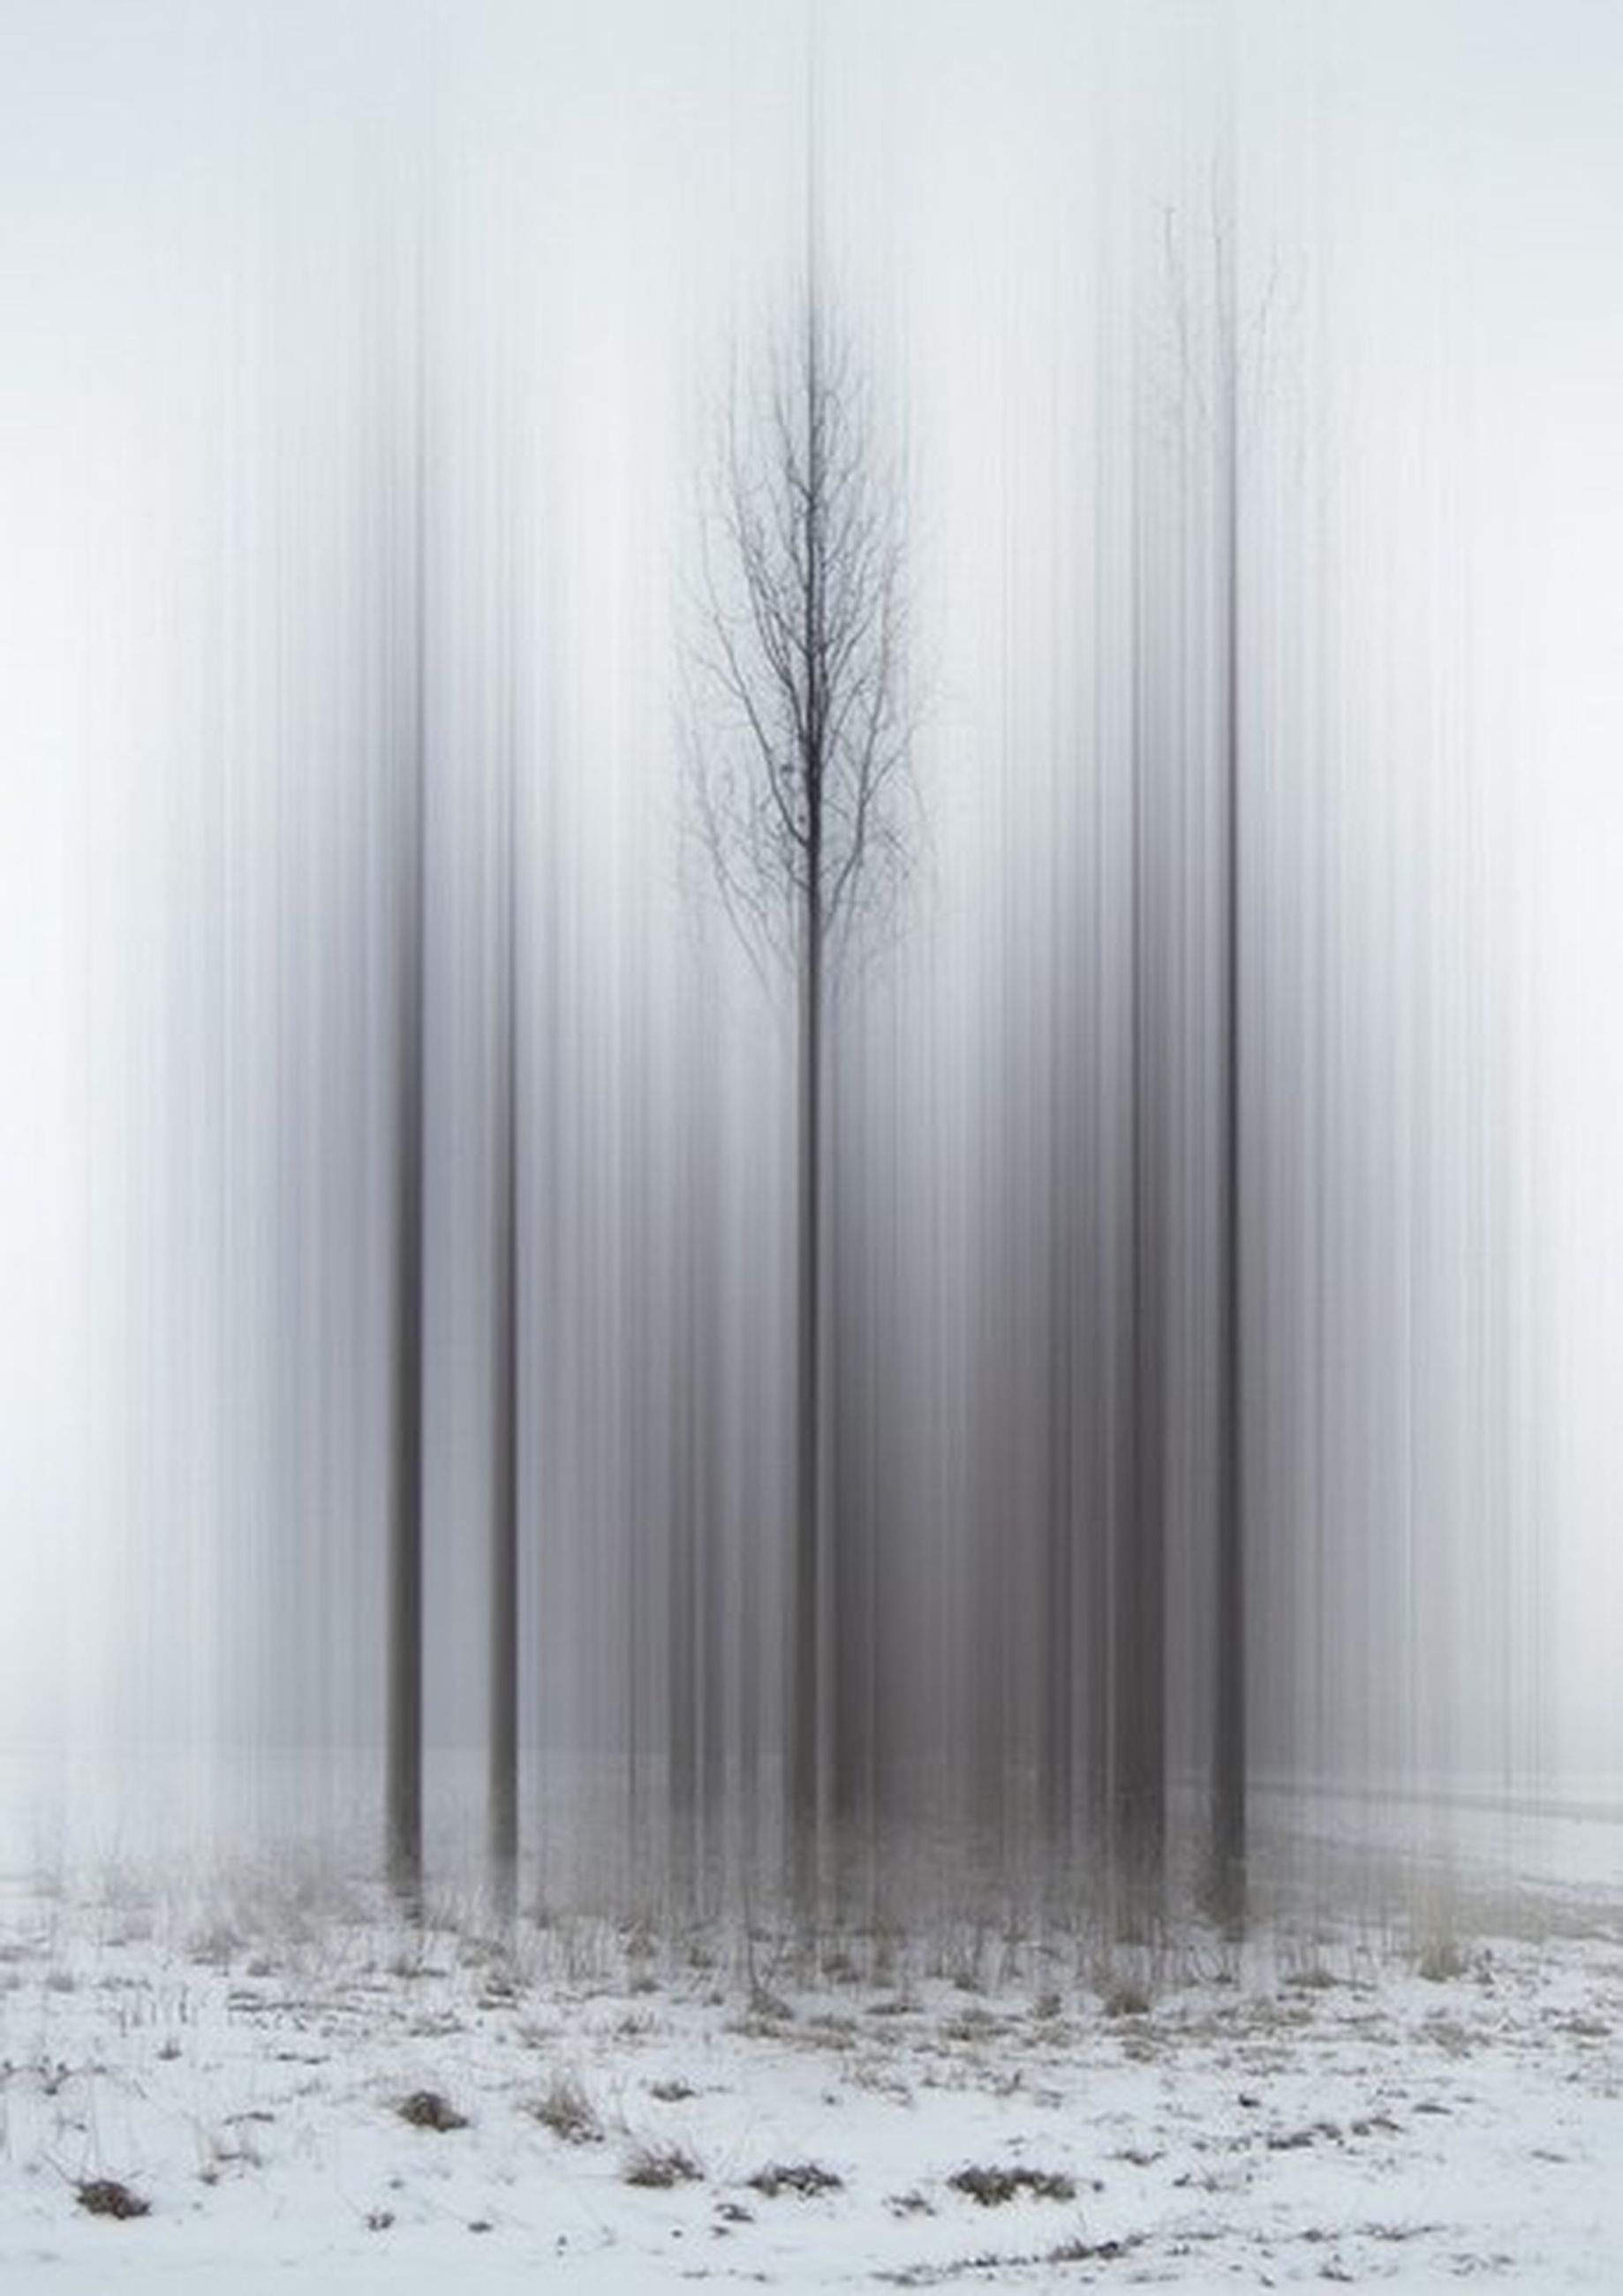 fog, foggy, winter, weather, tree, tranquility, cold temperature, tranquil scene, snow, scenics, beauty in nature, nature, tree trunk, bare tree, woodland, mist, season, forest, landscape